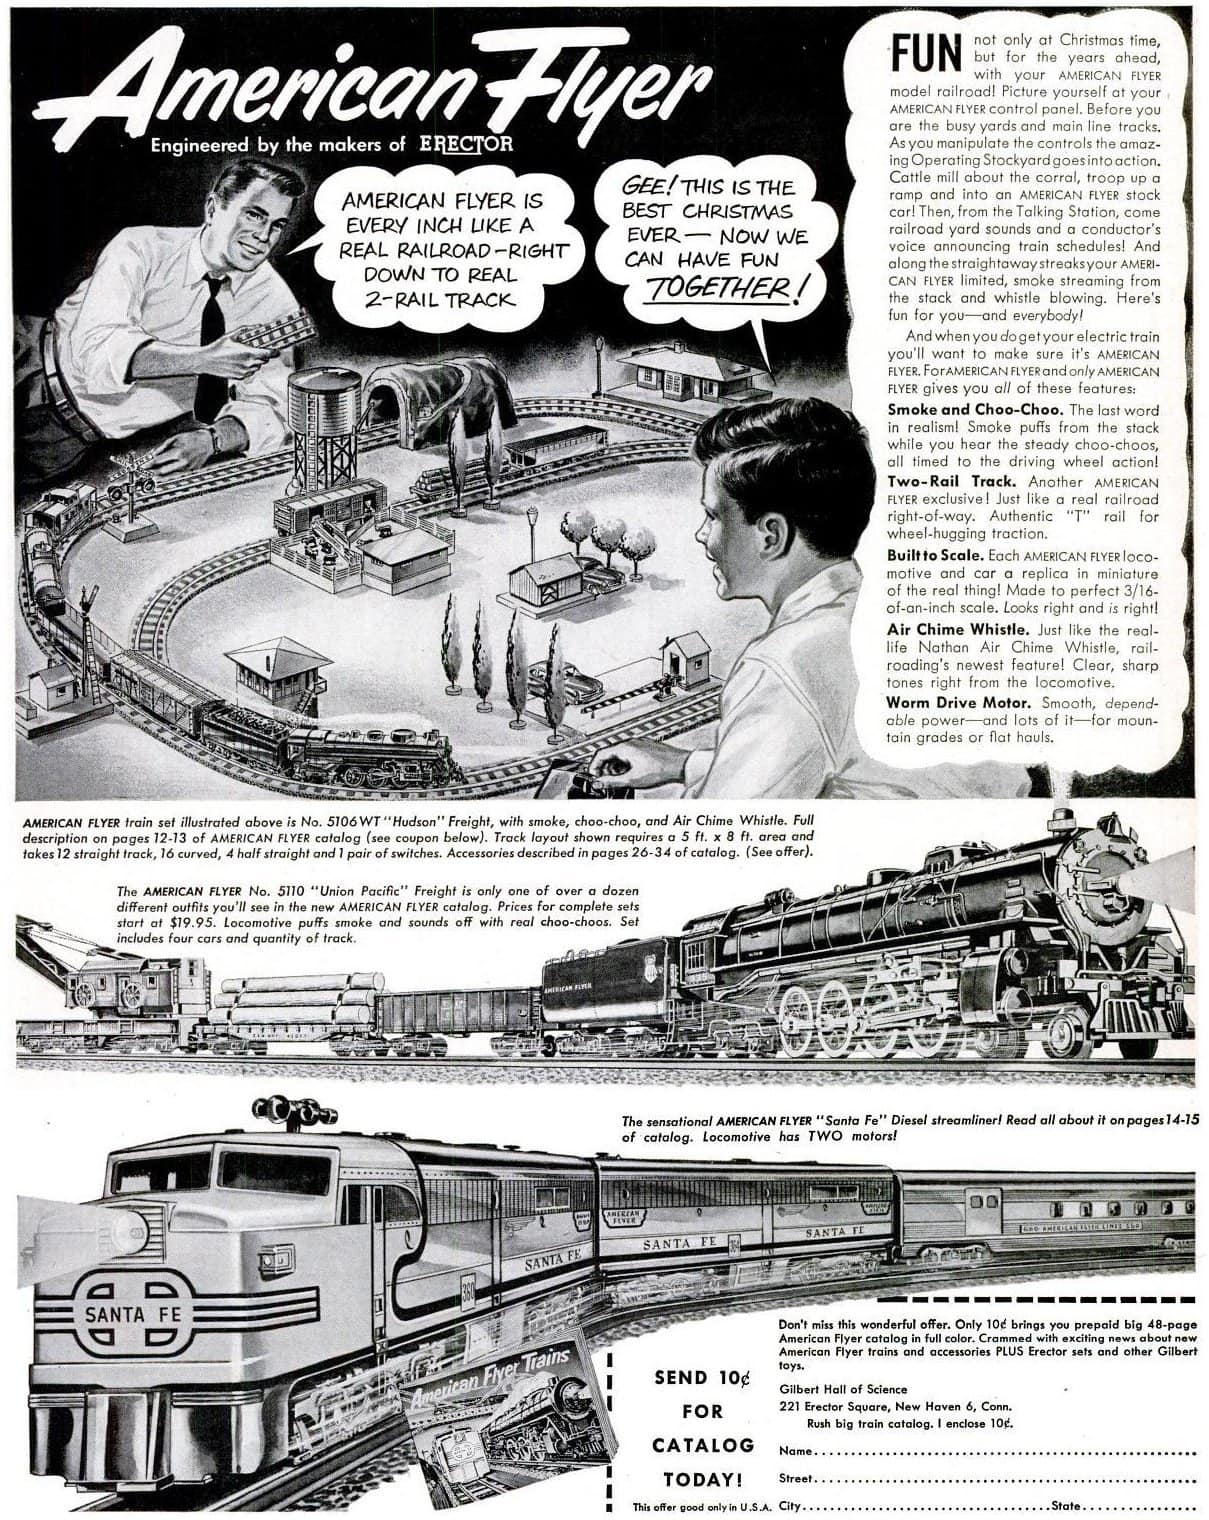 Vintage father and son playing with American Flyer railroad toys (1951)